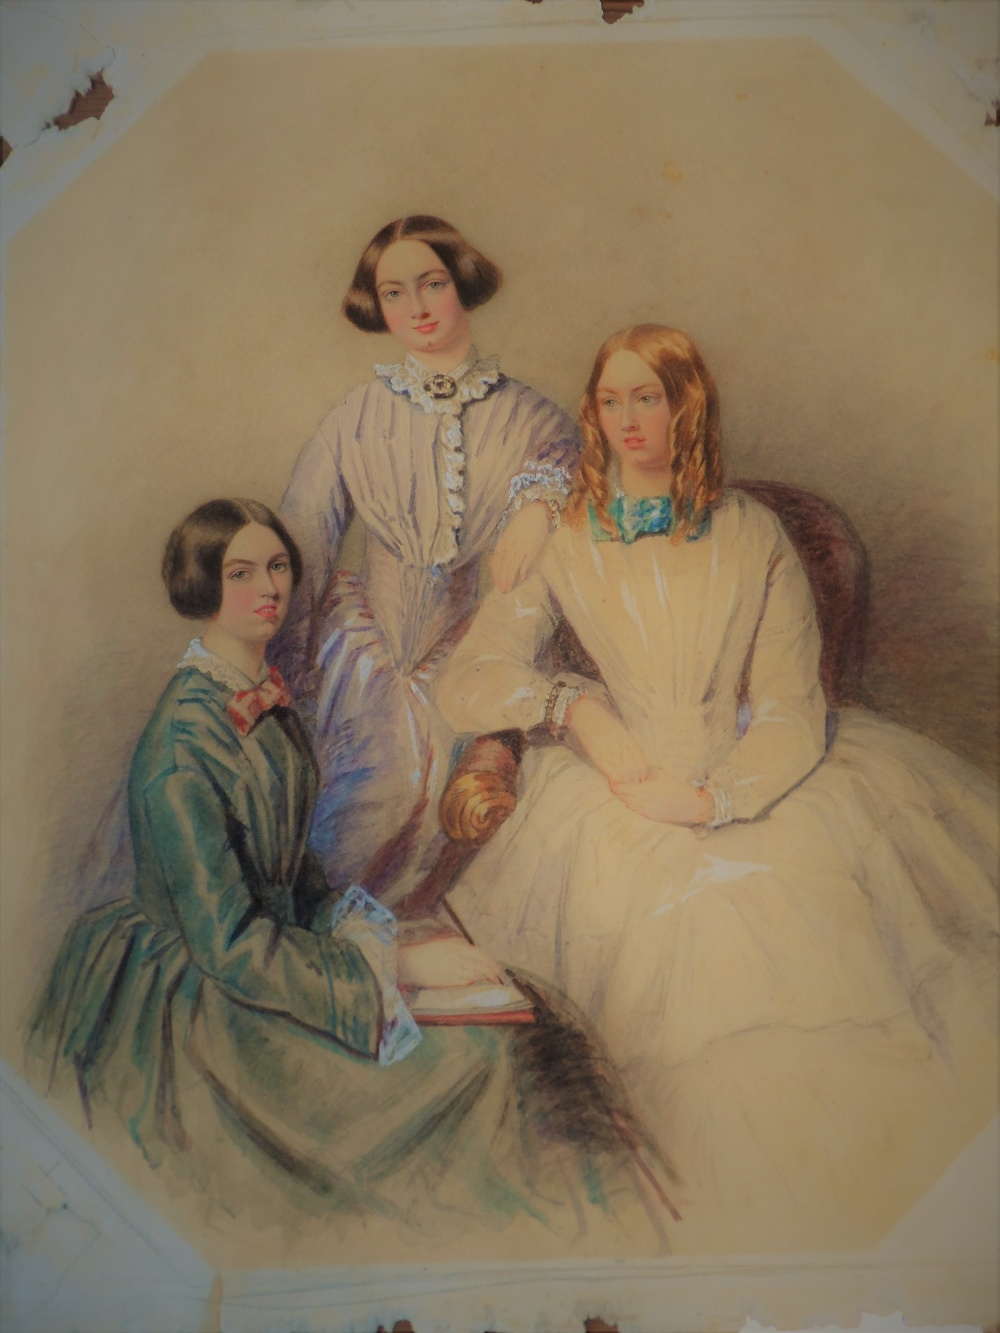 Feminist Masterpiece - A delightful and charming watercolour portrait study on 'rag' paper of three